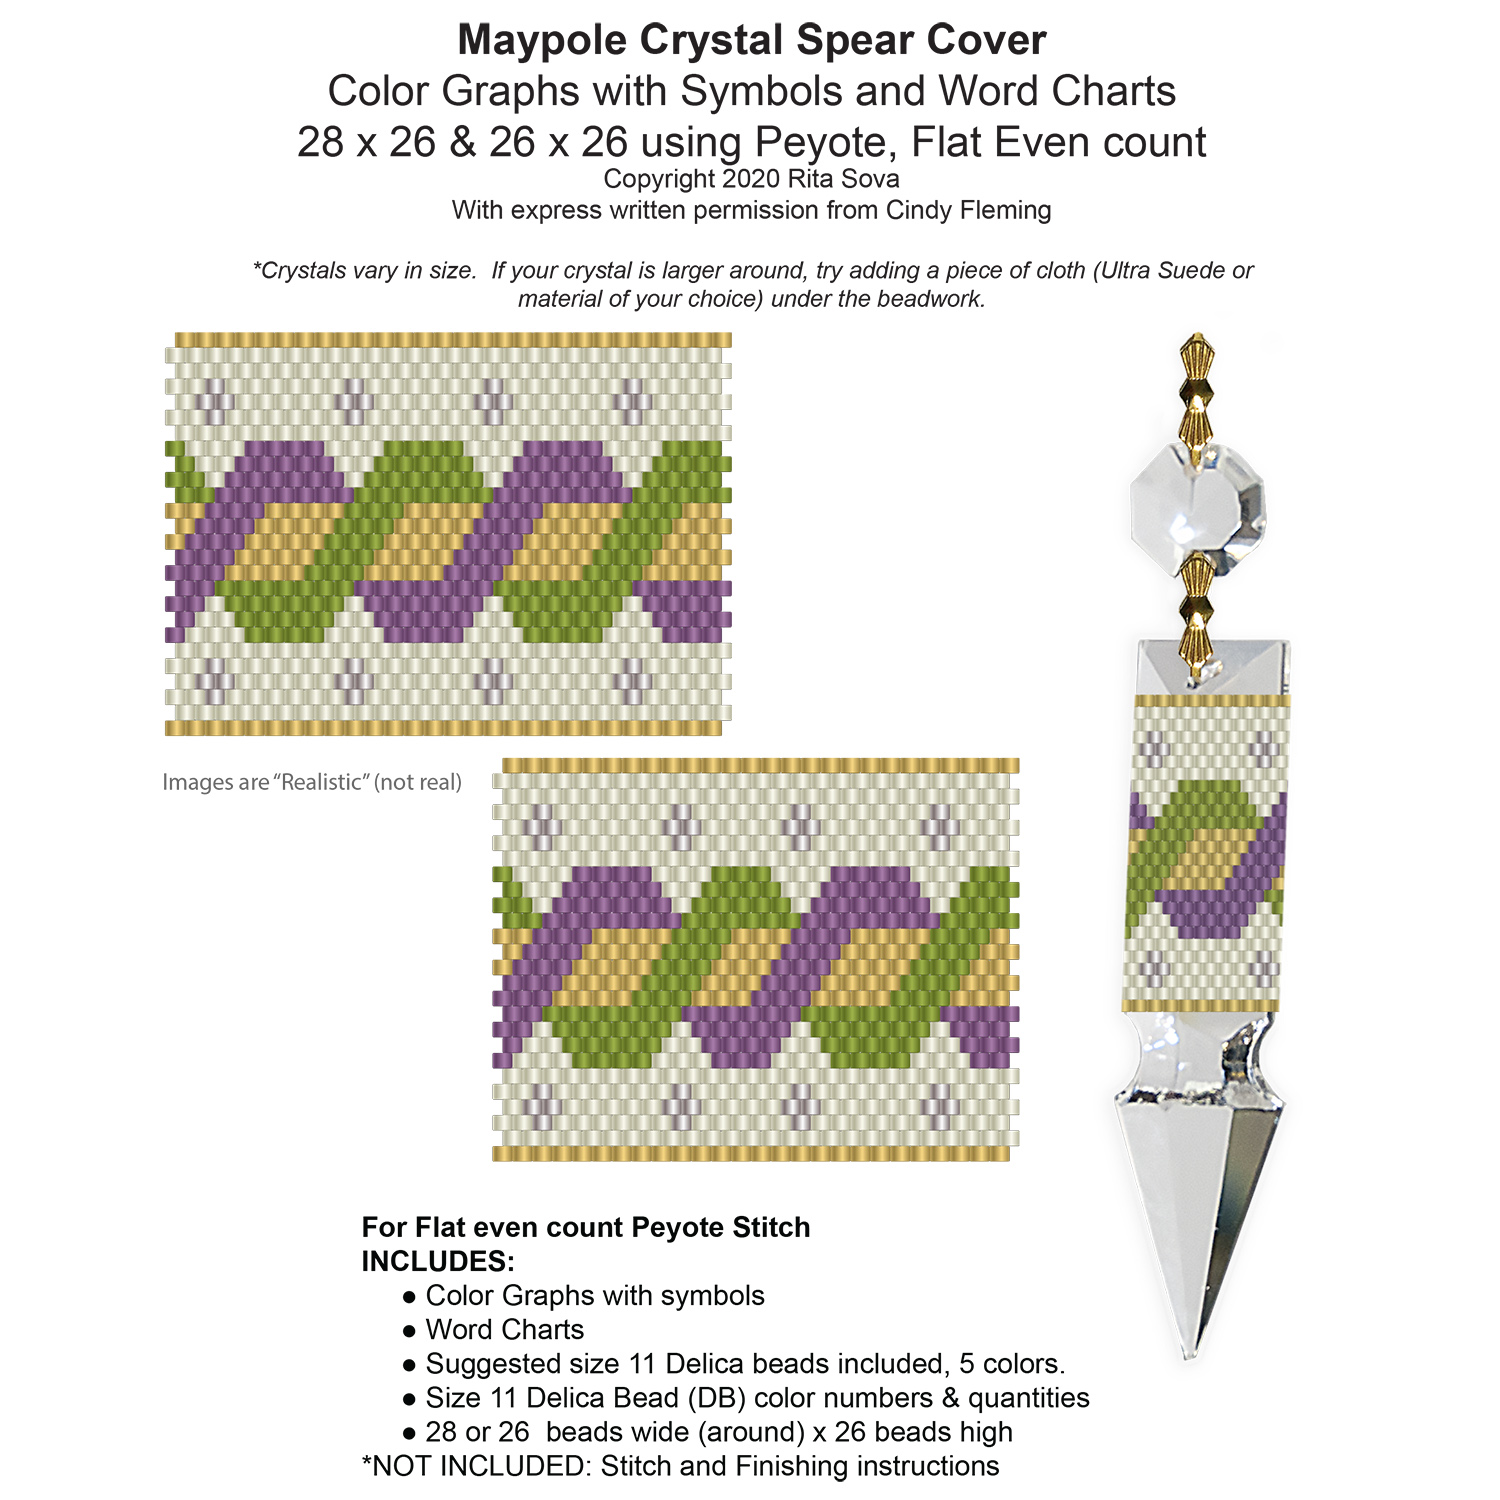 Maypole Crystal Spear Covers